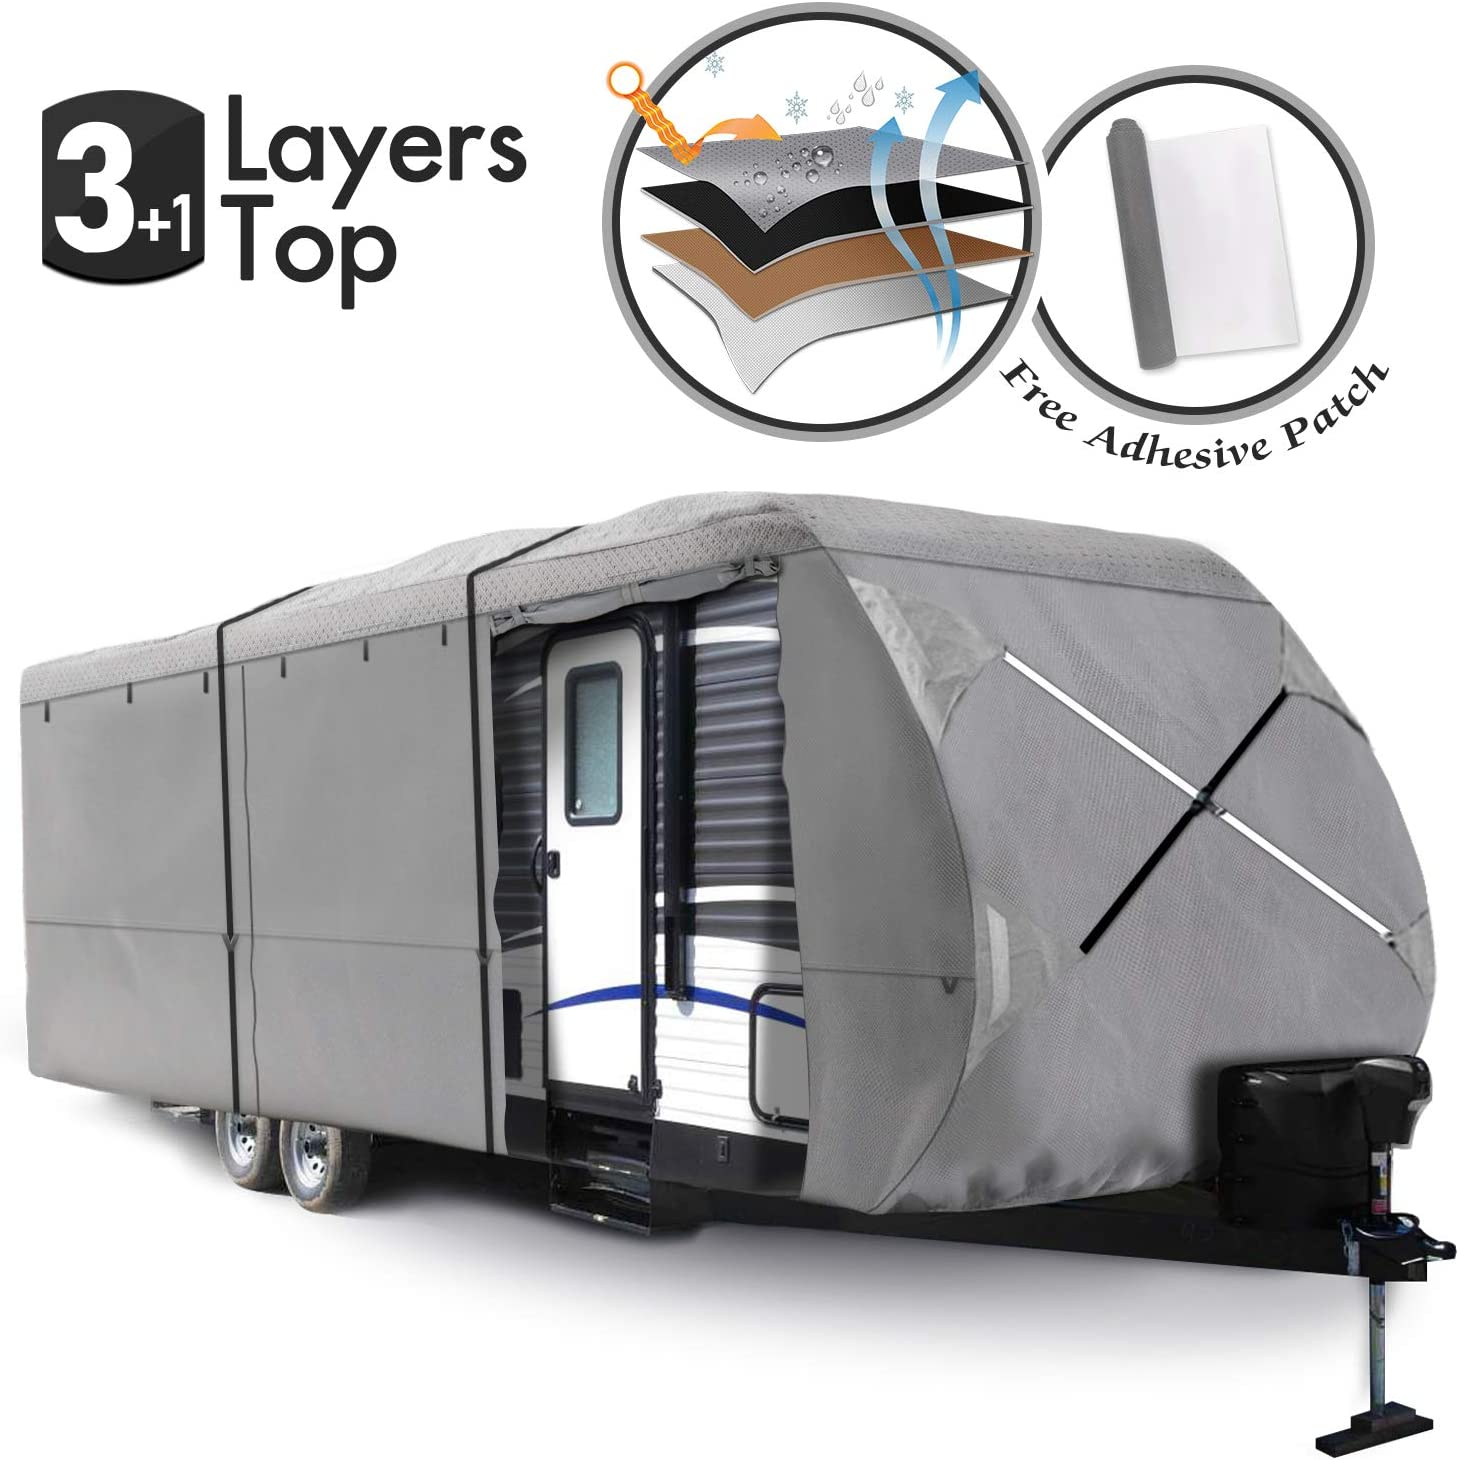 XGEAR Thick 3-Ply Top Panel Travel Trailer Cover 18-20 Ripstop Waterproof RVs Covers with Storage Bag and Windproof Buckles